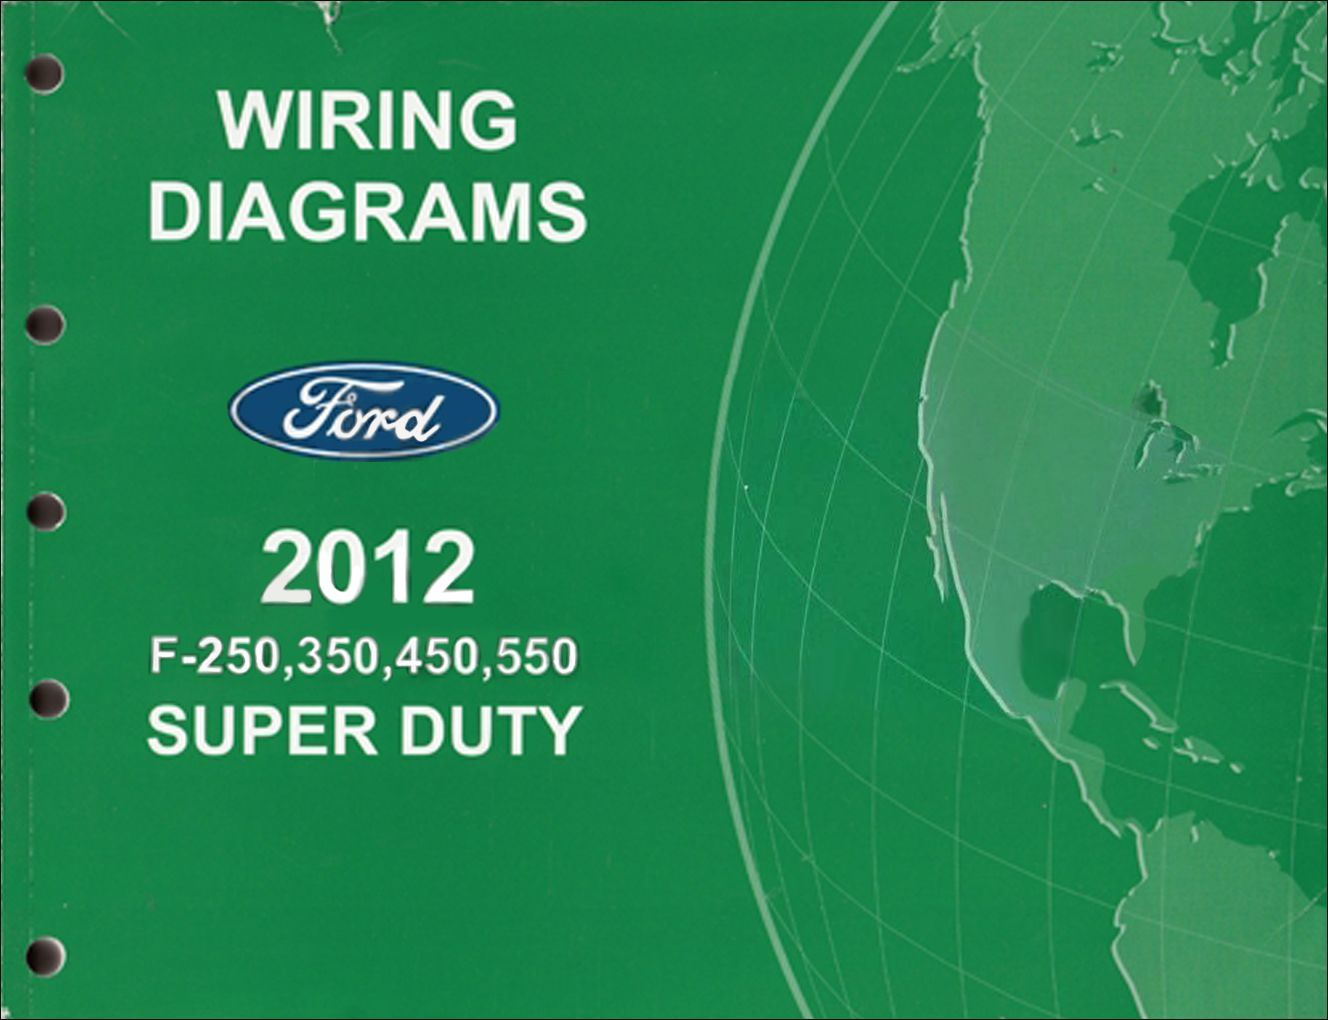 hight resolution of 2012 ford f 250 thru 550 super duty wiring diagram manual original 1999 ford f250 super duty wiring diagram ford f 250 super duty wiring diagram